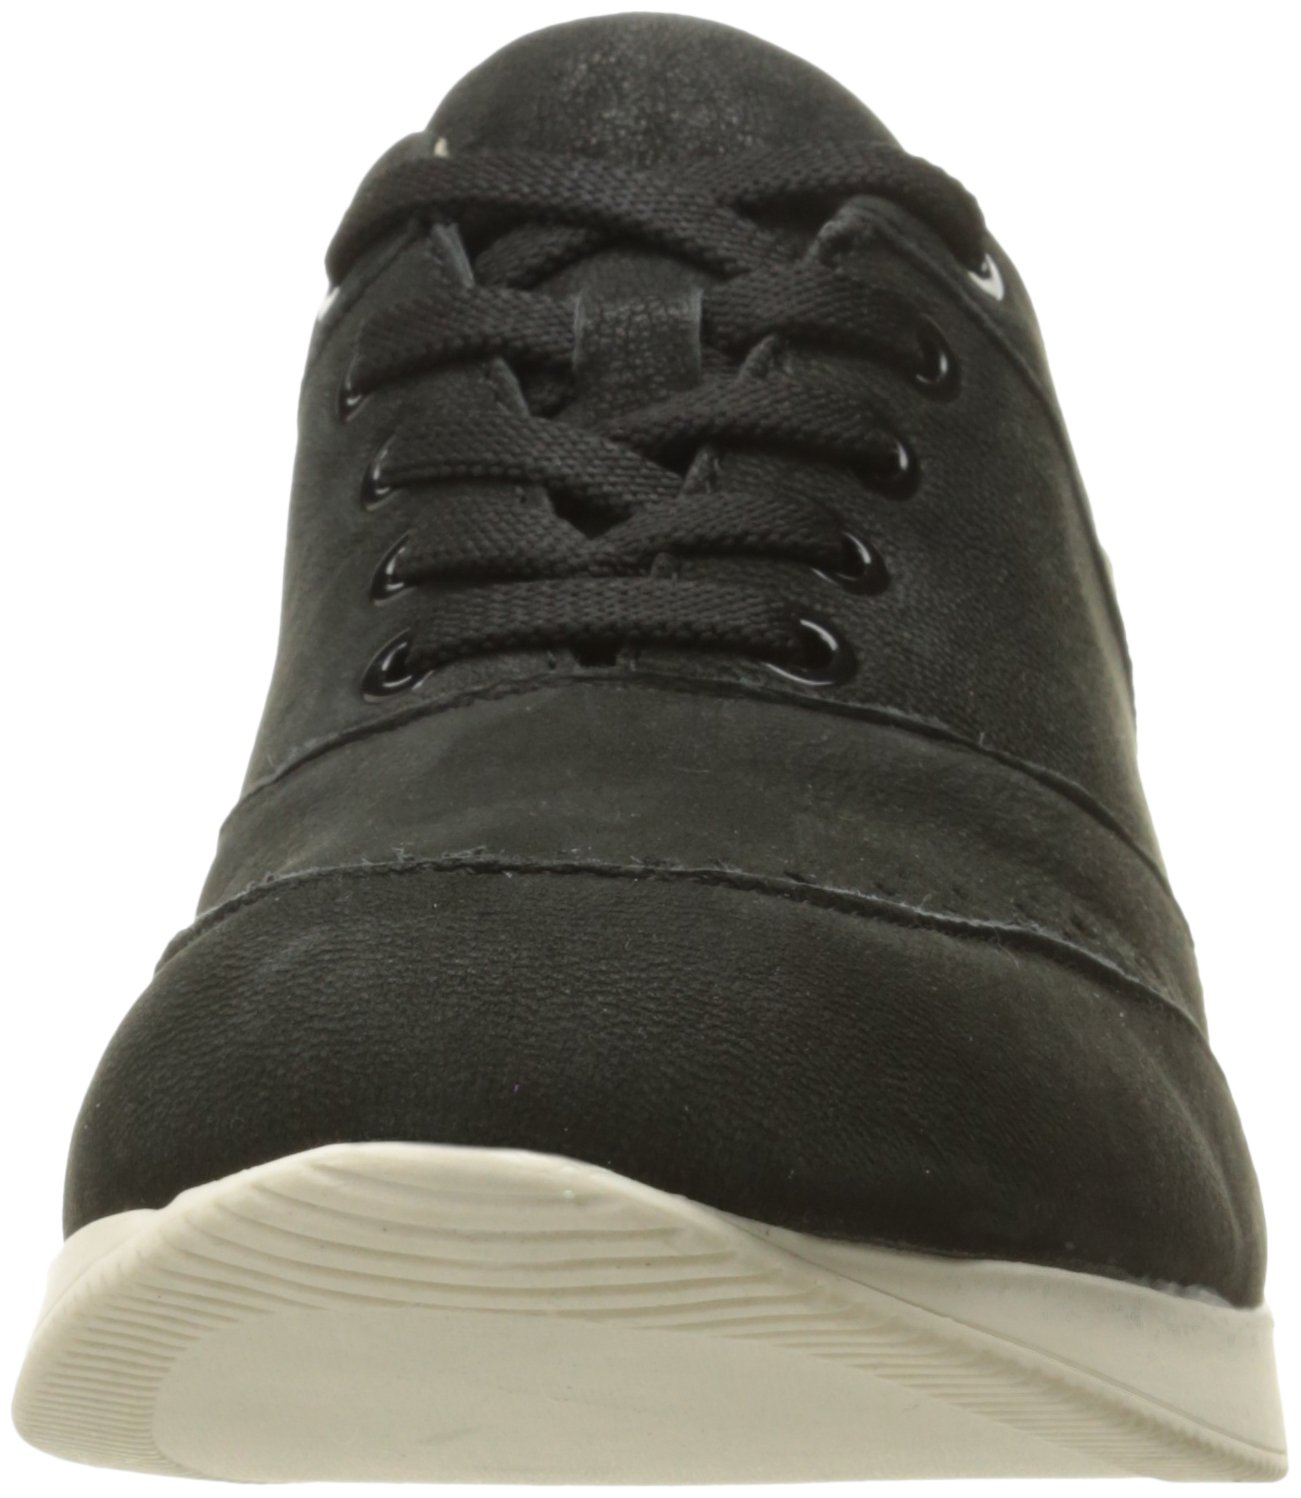 Naturalizer Women's Jimi 7.5 2 Fashion Sneaker B01NH0CK4A 7.5 Jimi B(M) US|Black 68fea8